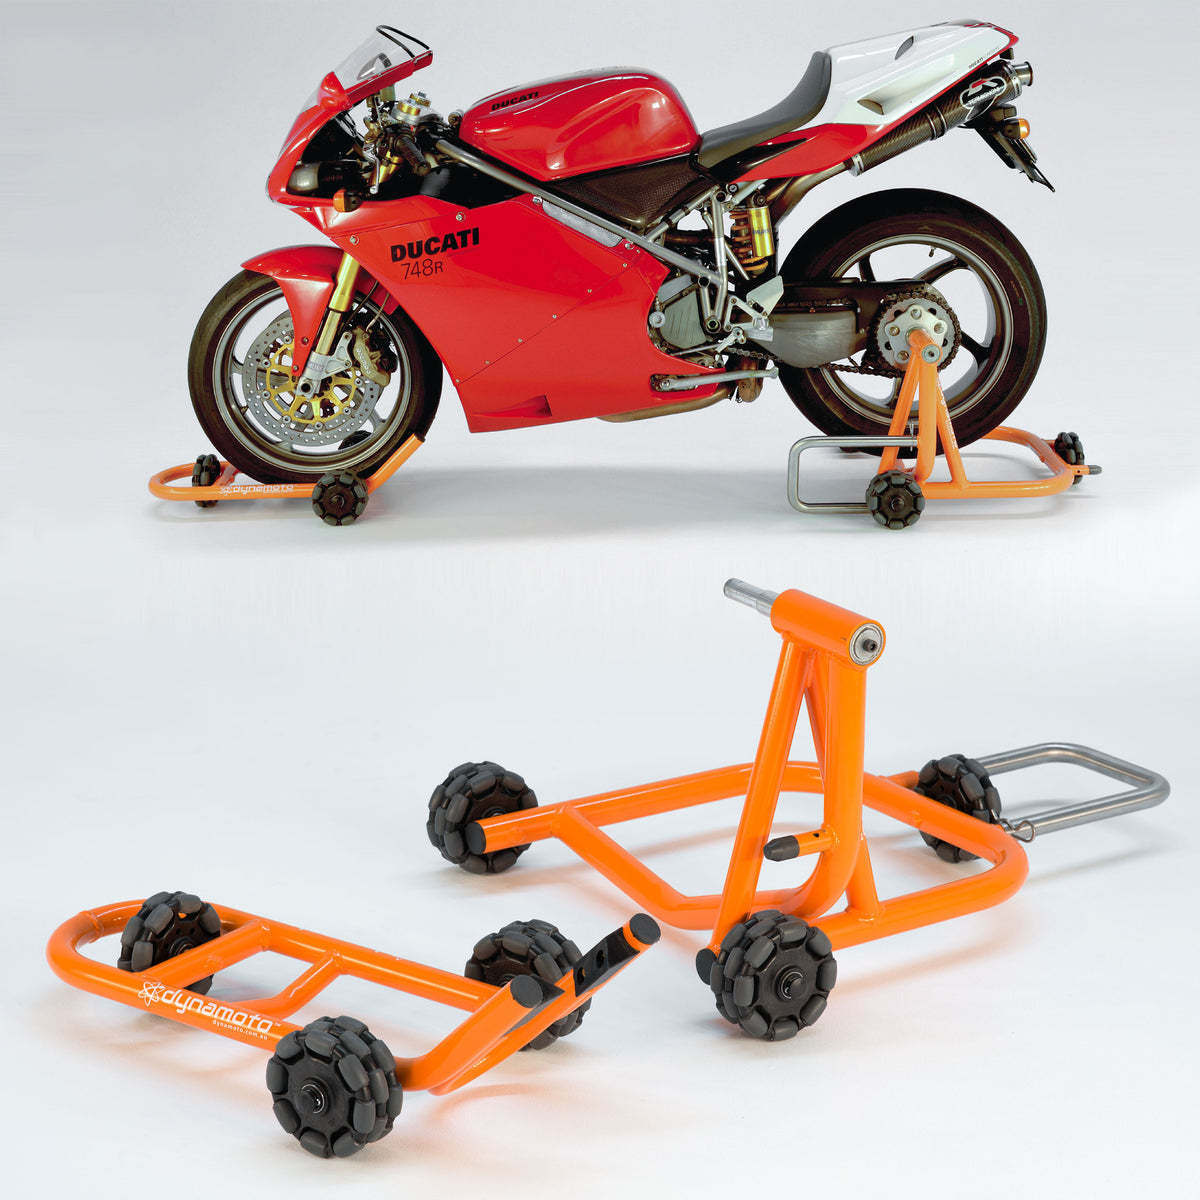 STAND SET:<br> FRONT STAND + REAR STAND<br> FOR SINGLE-SIDED SWINGARM BIKES